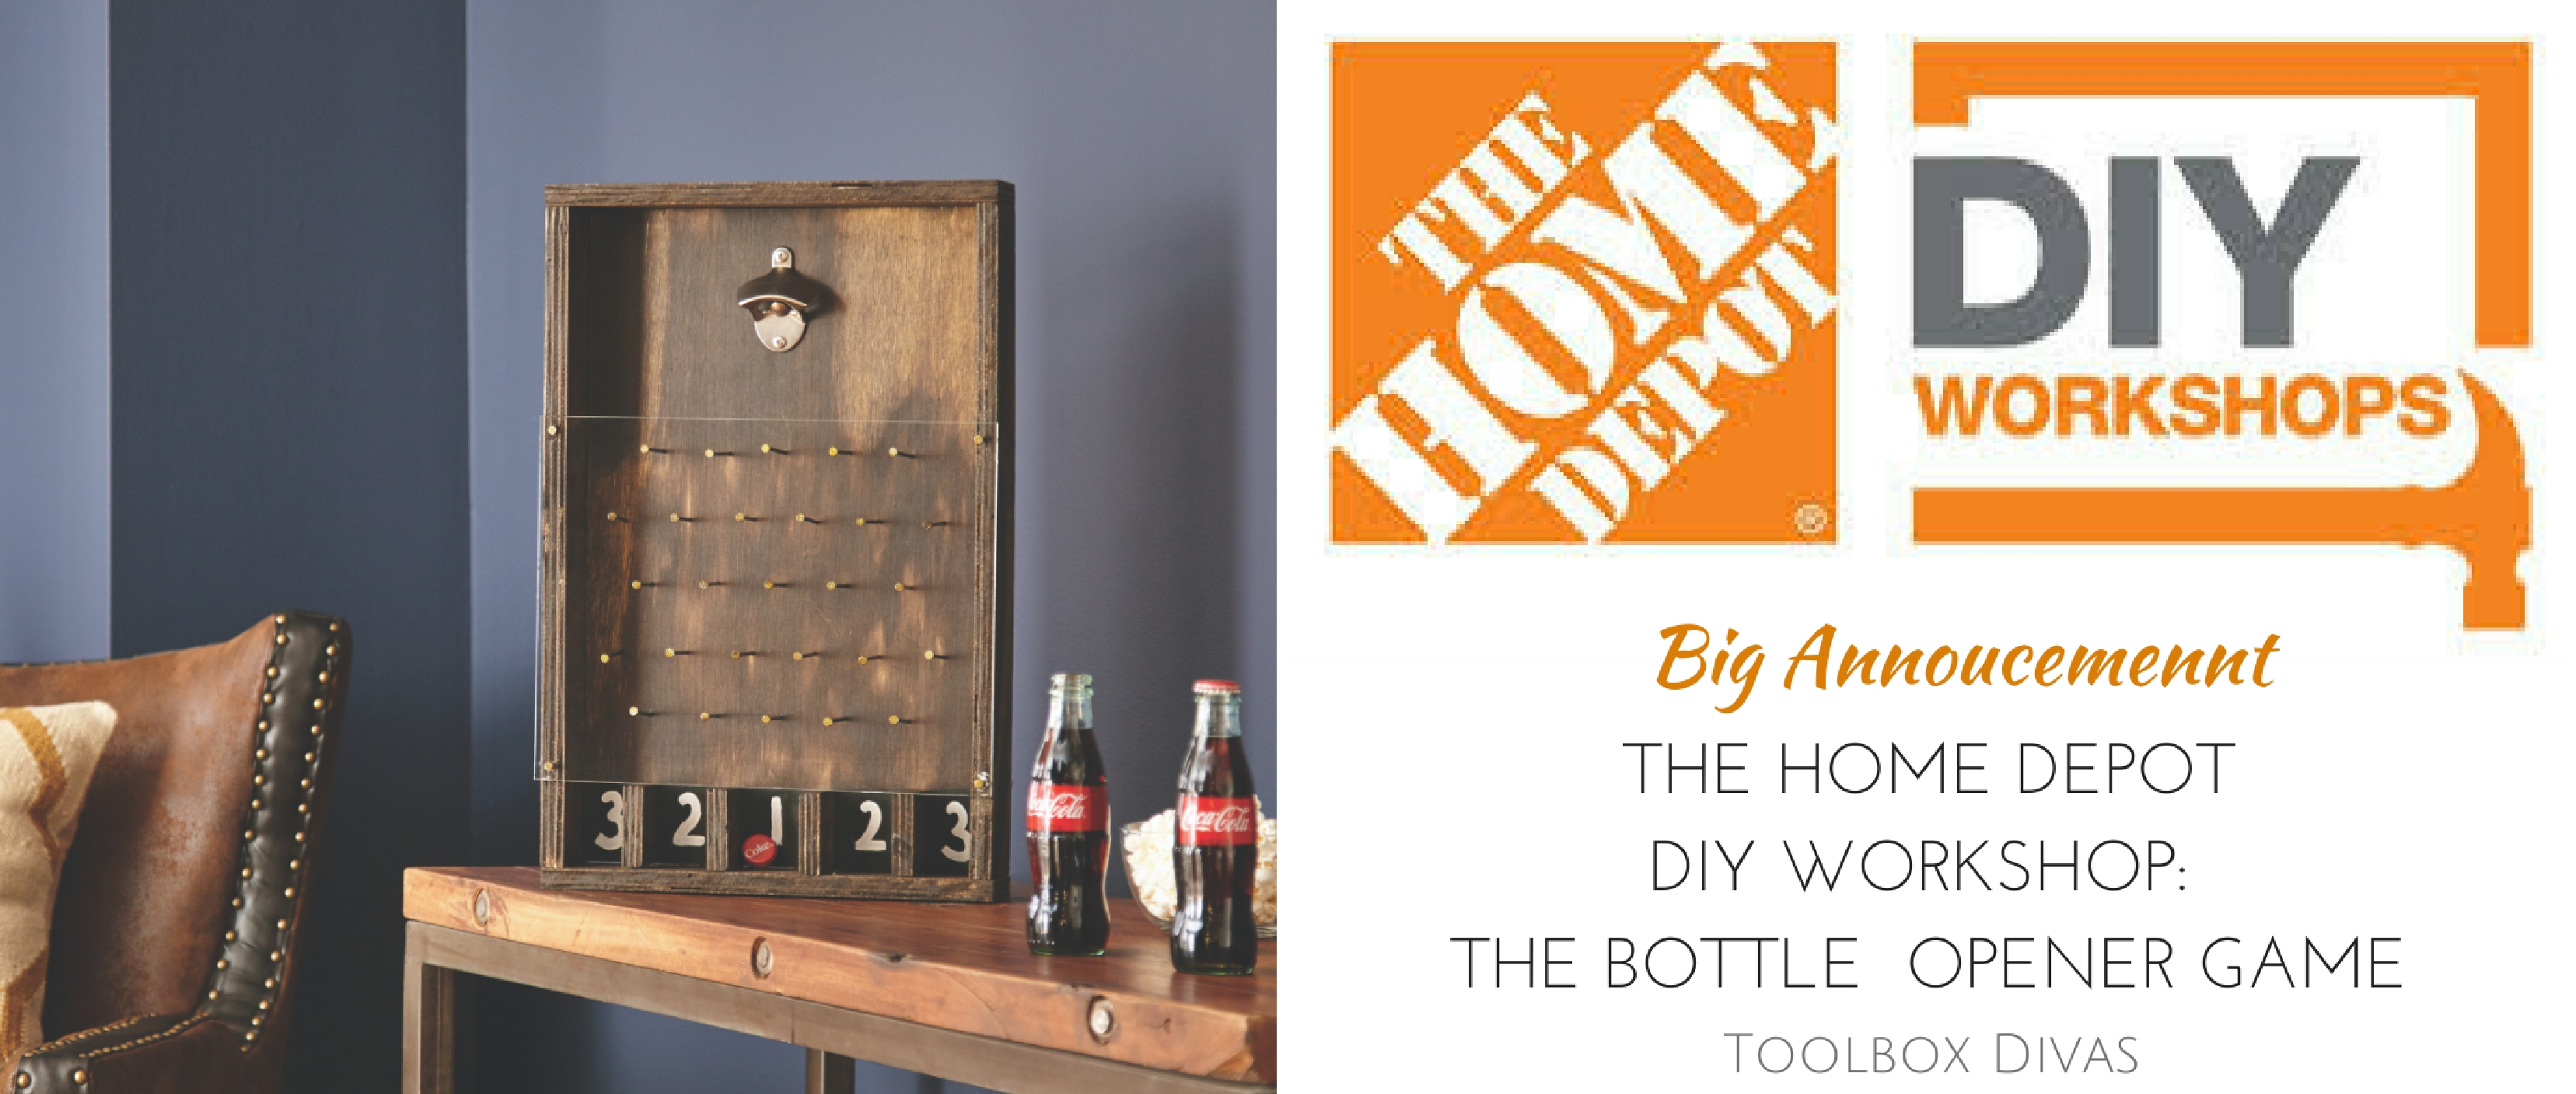 the home depot diy workshop father s day bottle opener game toolbox divas. Black Bedroom Furniture Sets. Home Design Ideas